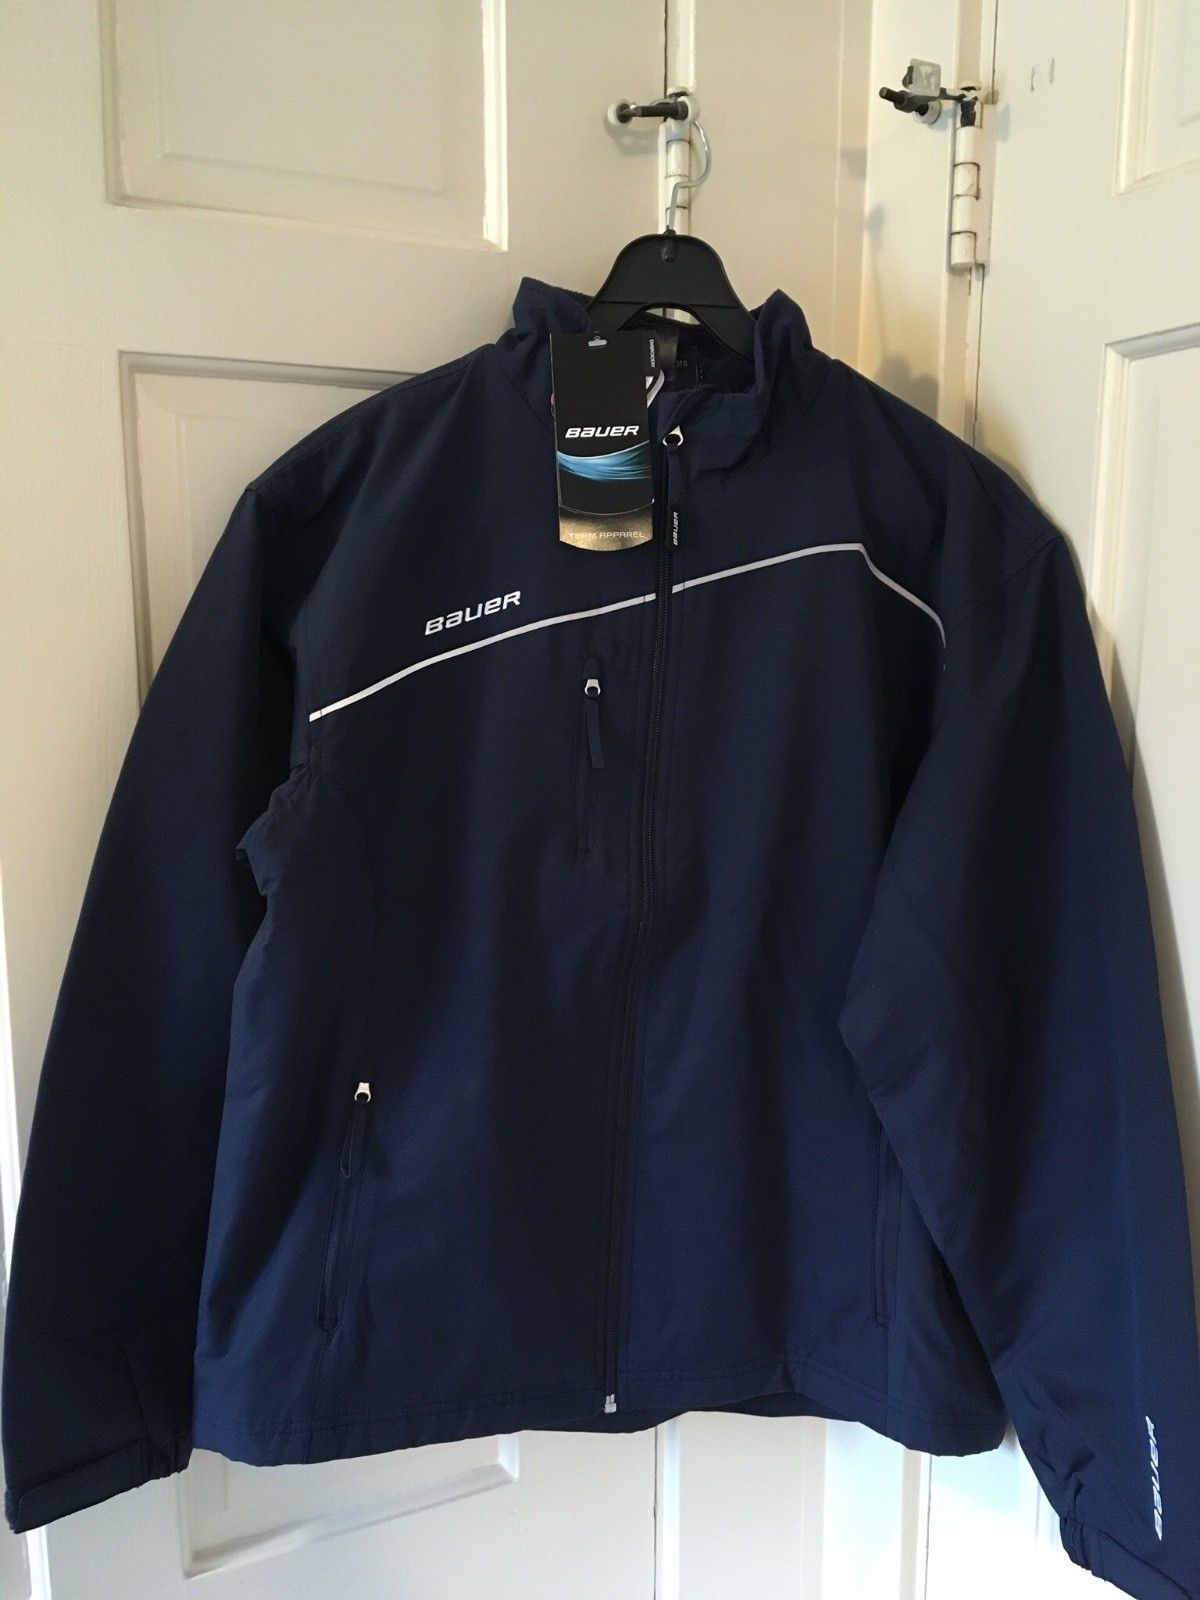 Clothing 159121 Bauer Hockey Navy Lightweight Warmup Jacket Size Junior Youth Xl Buy It Now Only 25 On Ebay Cl Warmup Jacket Jackets Lightweight Jacket